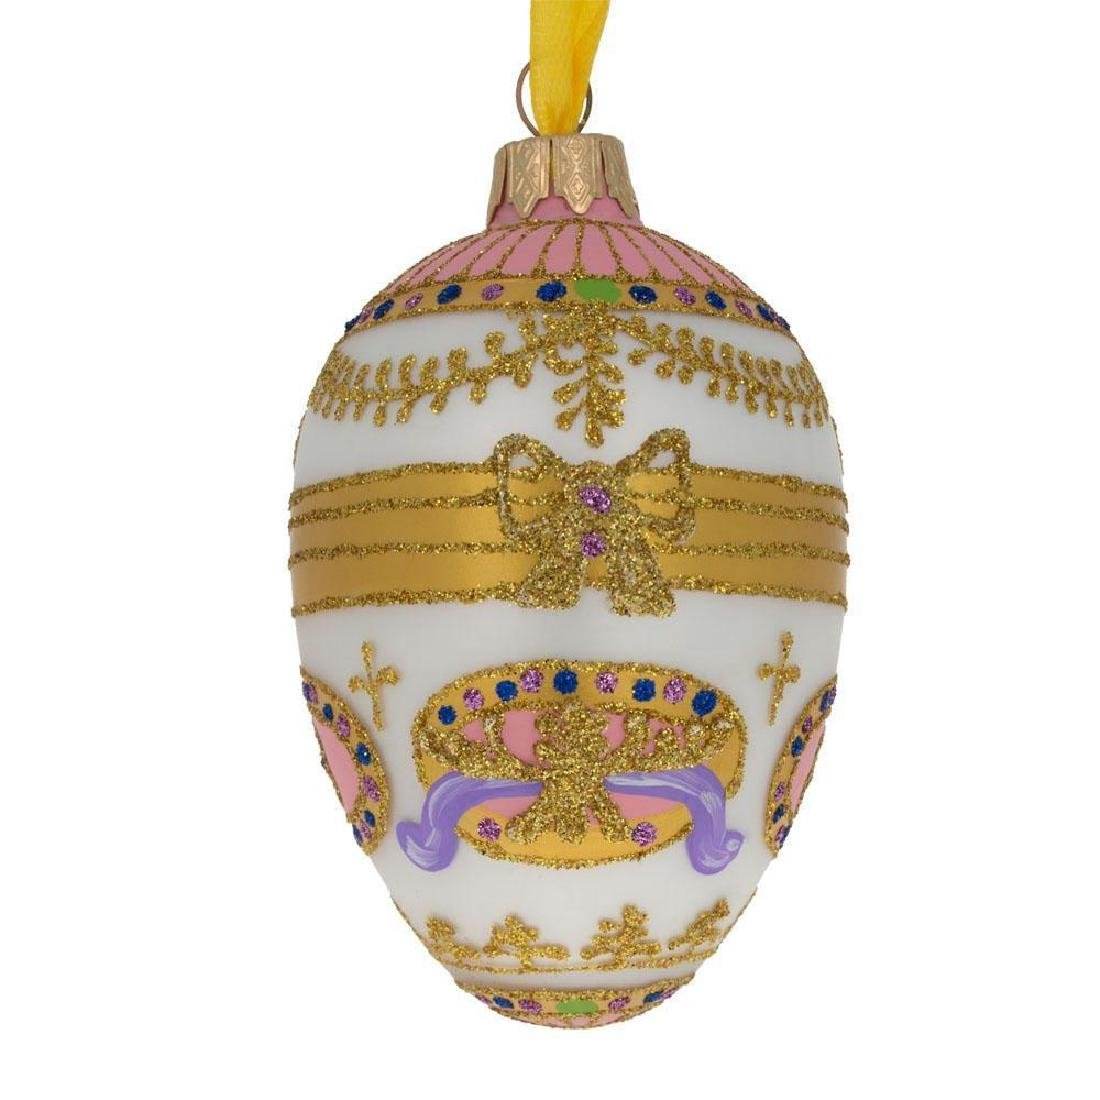 "4"" Bonbonniere Royal Egg Glass Christmas Ornament"